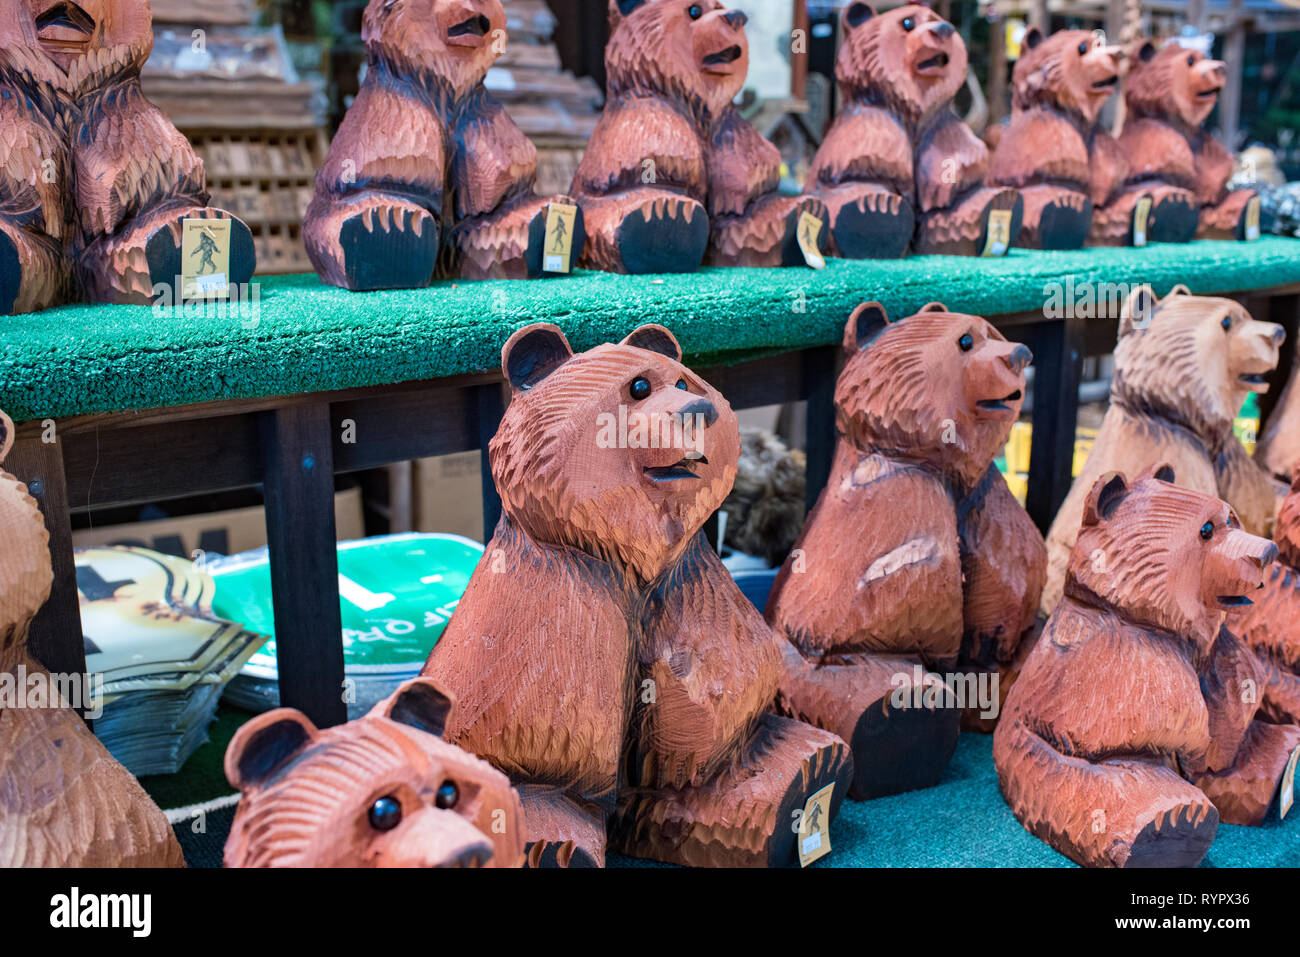 Fun tourist attraction and wood carvings that have nothing to do with Bigfoot near Garberville, California. - Stock Image